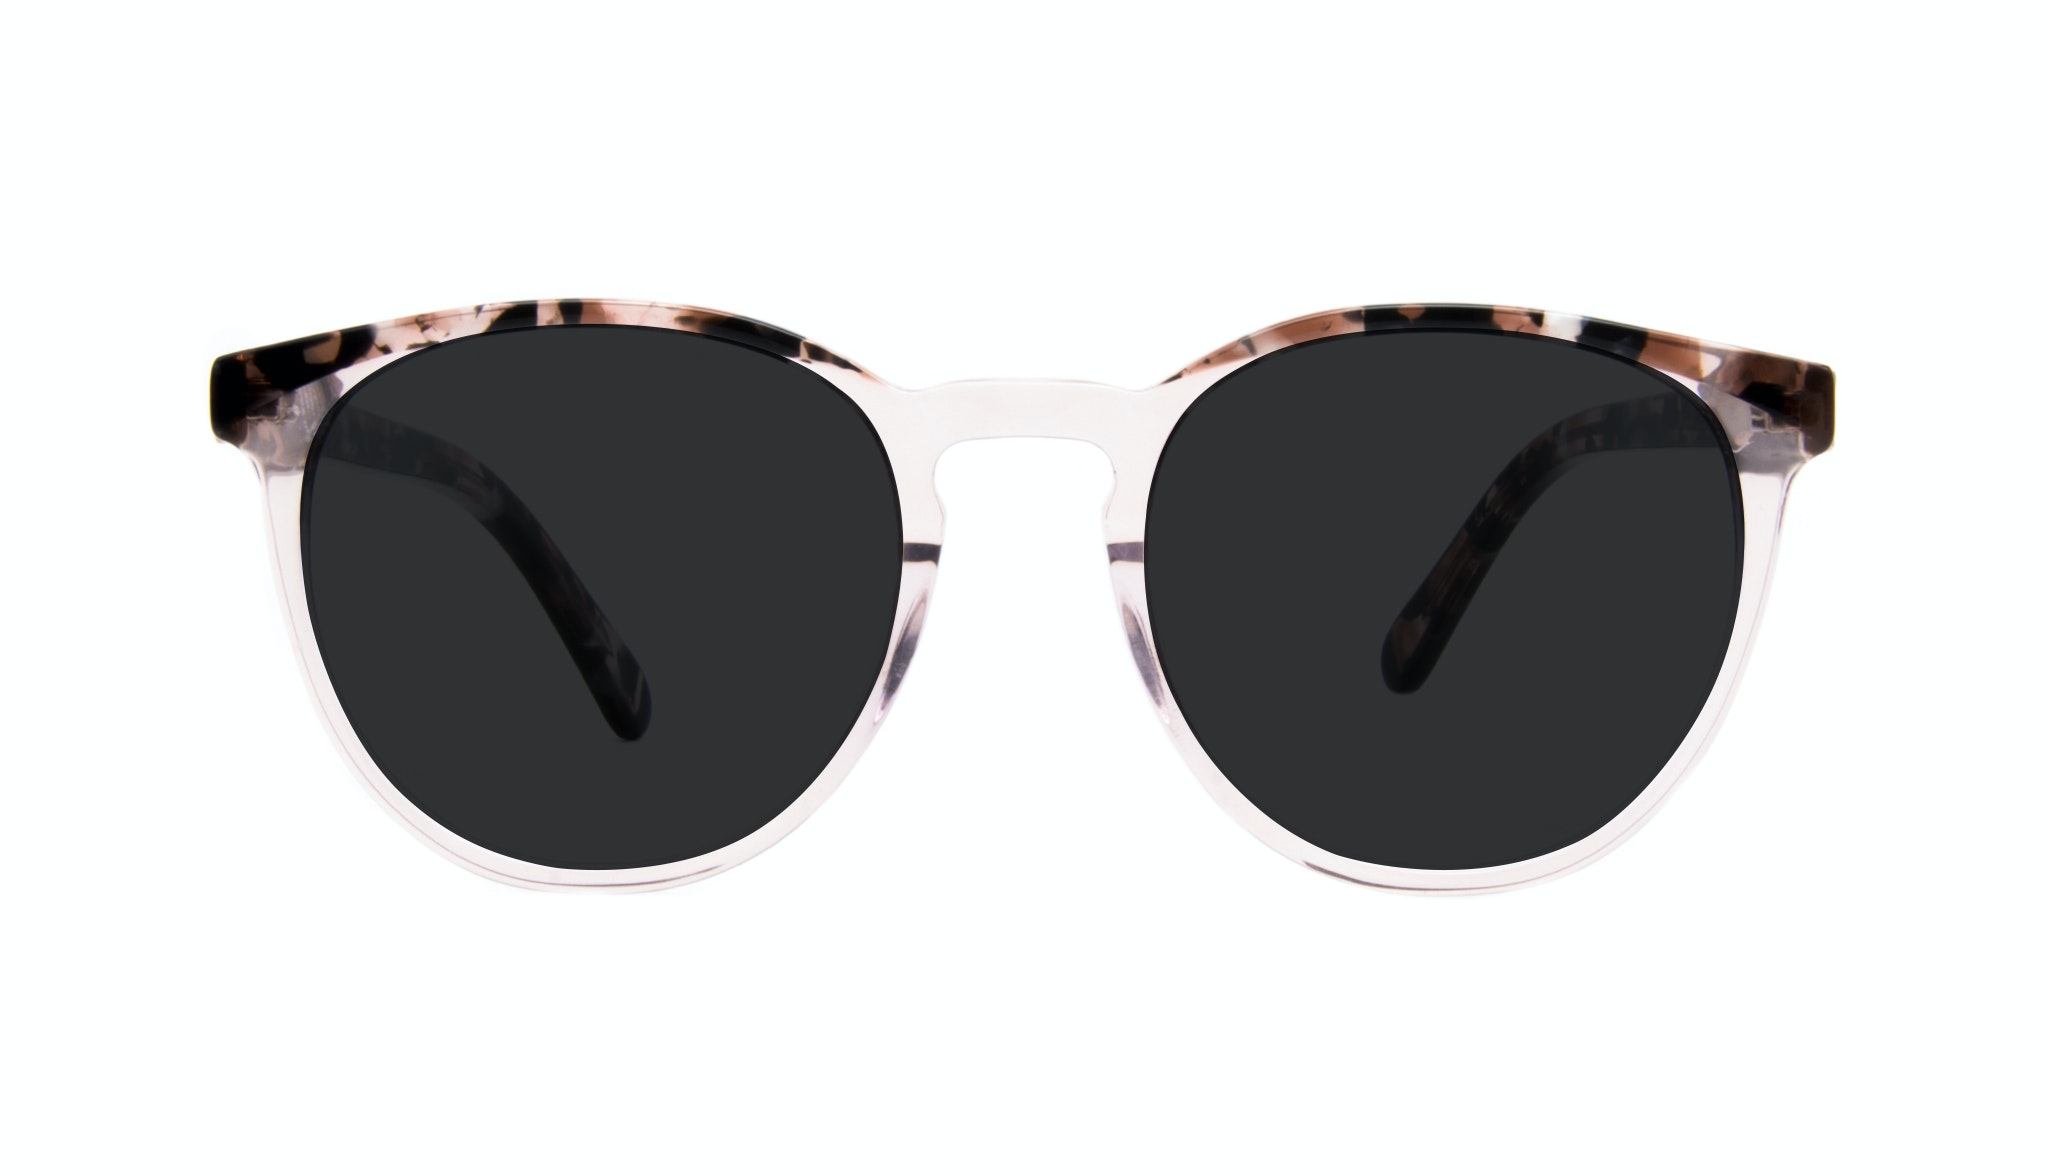 Affordable Fashion Glasses Round Sunglasses Women Brilliant Rose Tort